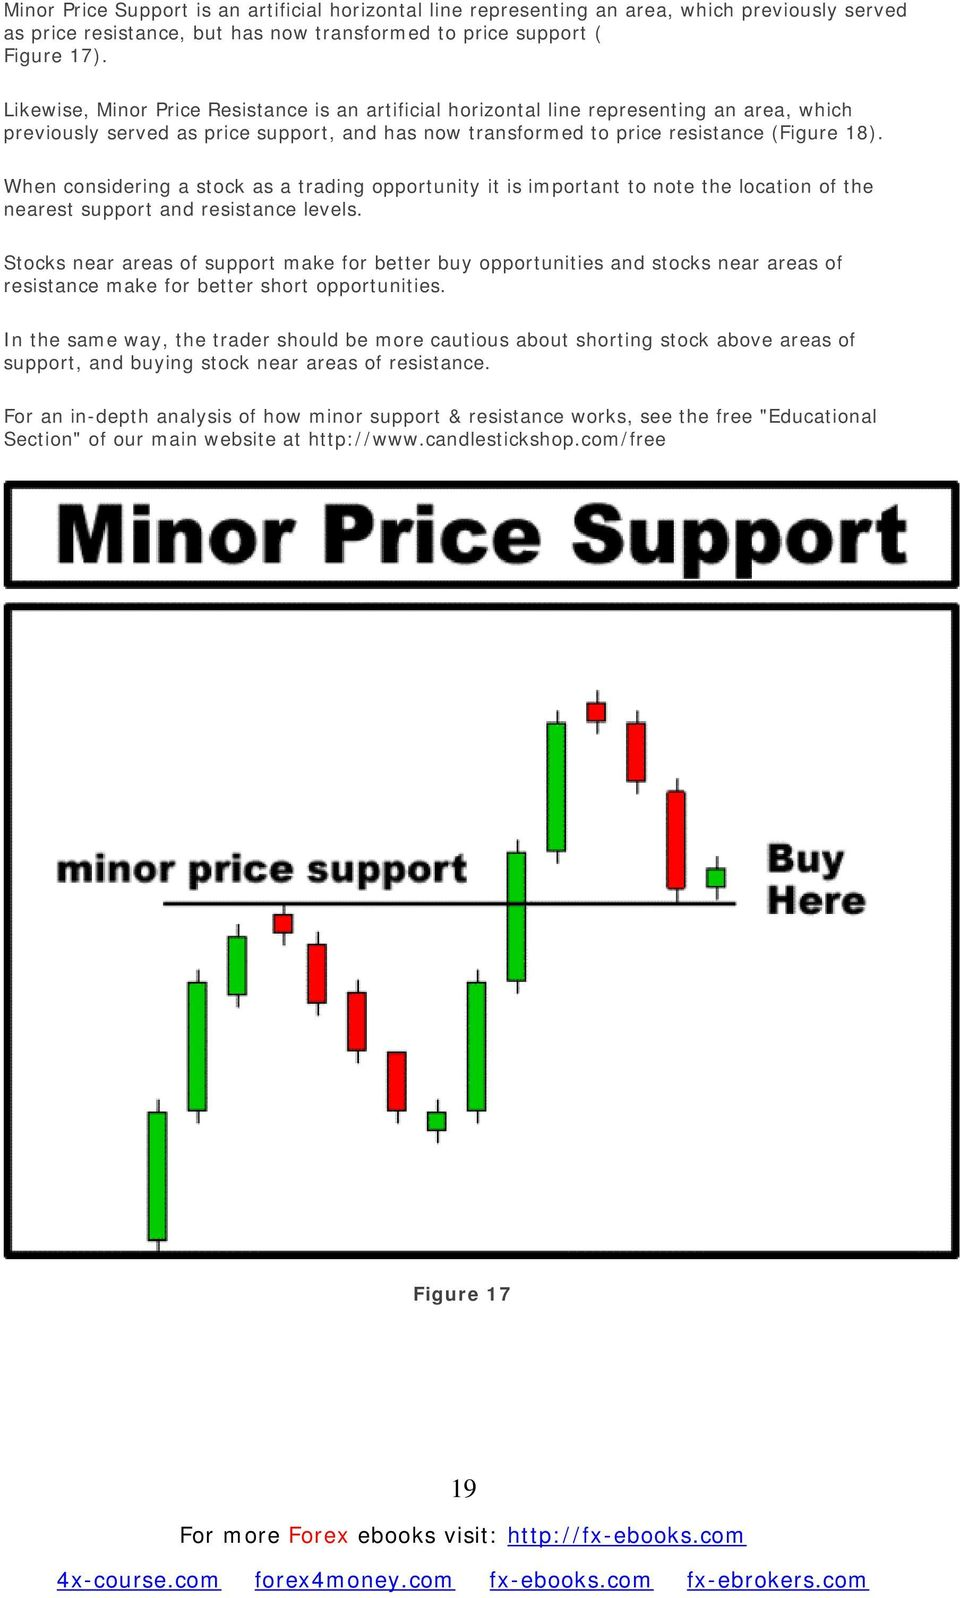 When considering a stock as a trading opportunity it is important to note the location of the nearest support and resistance levels.